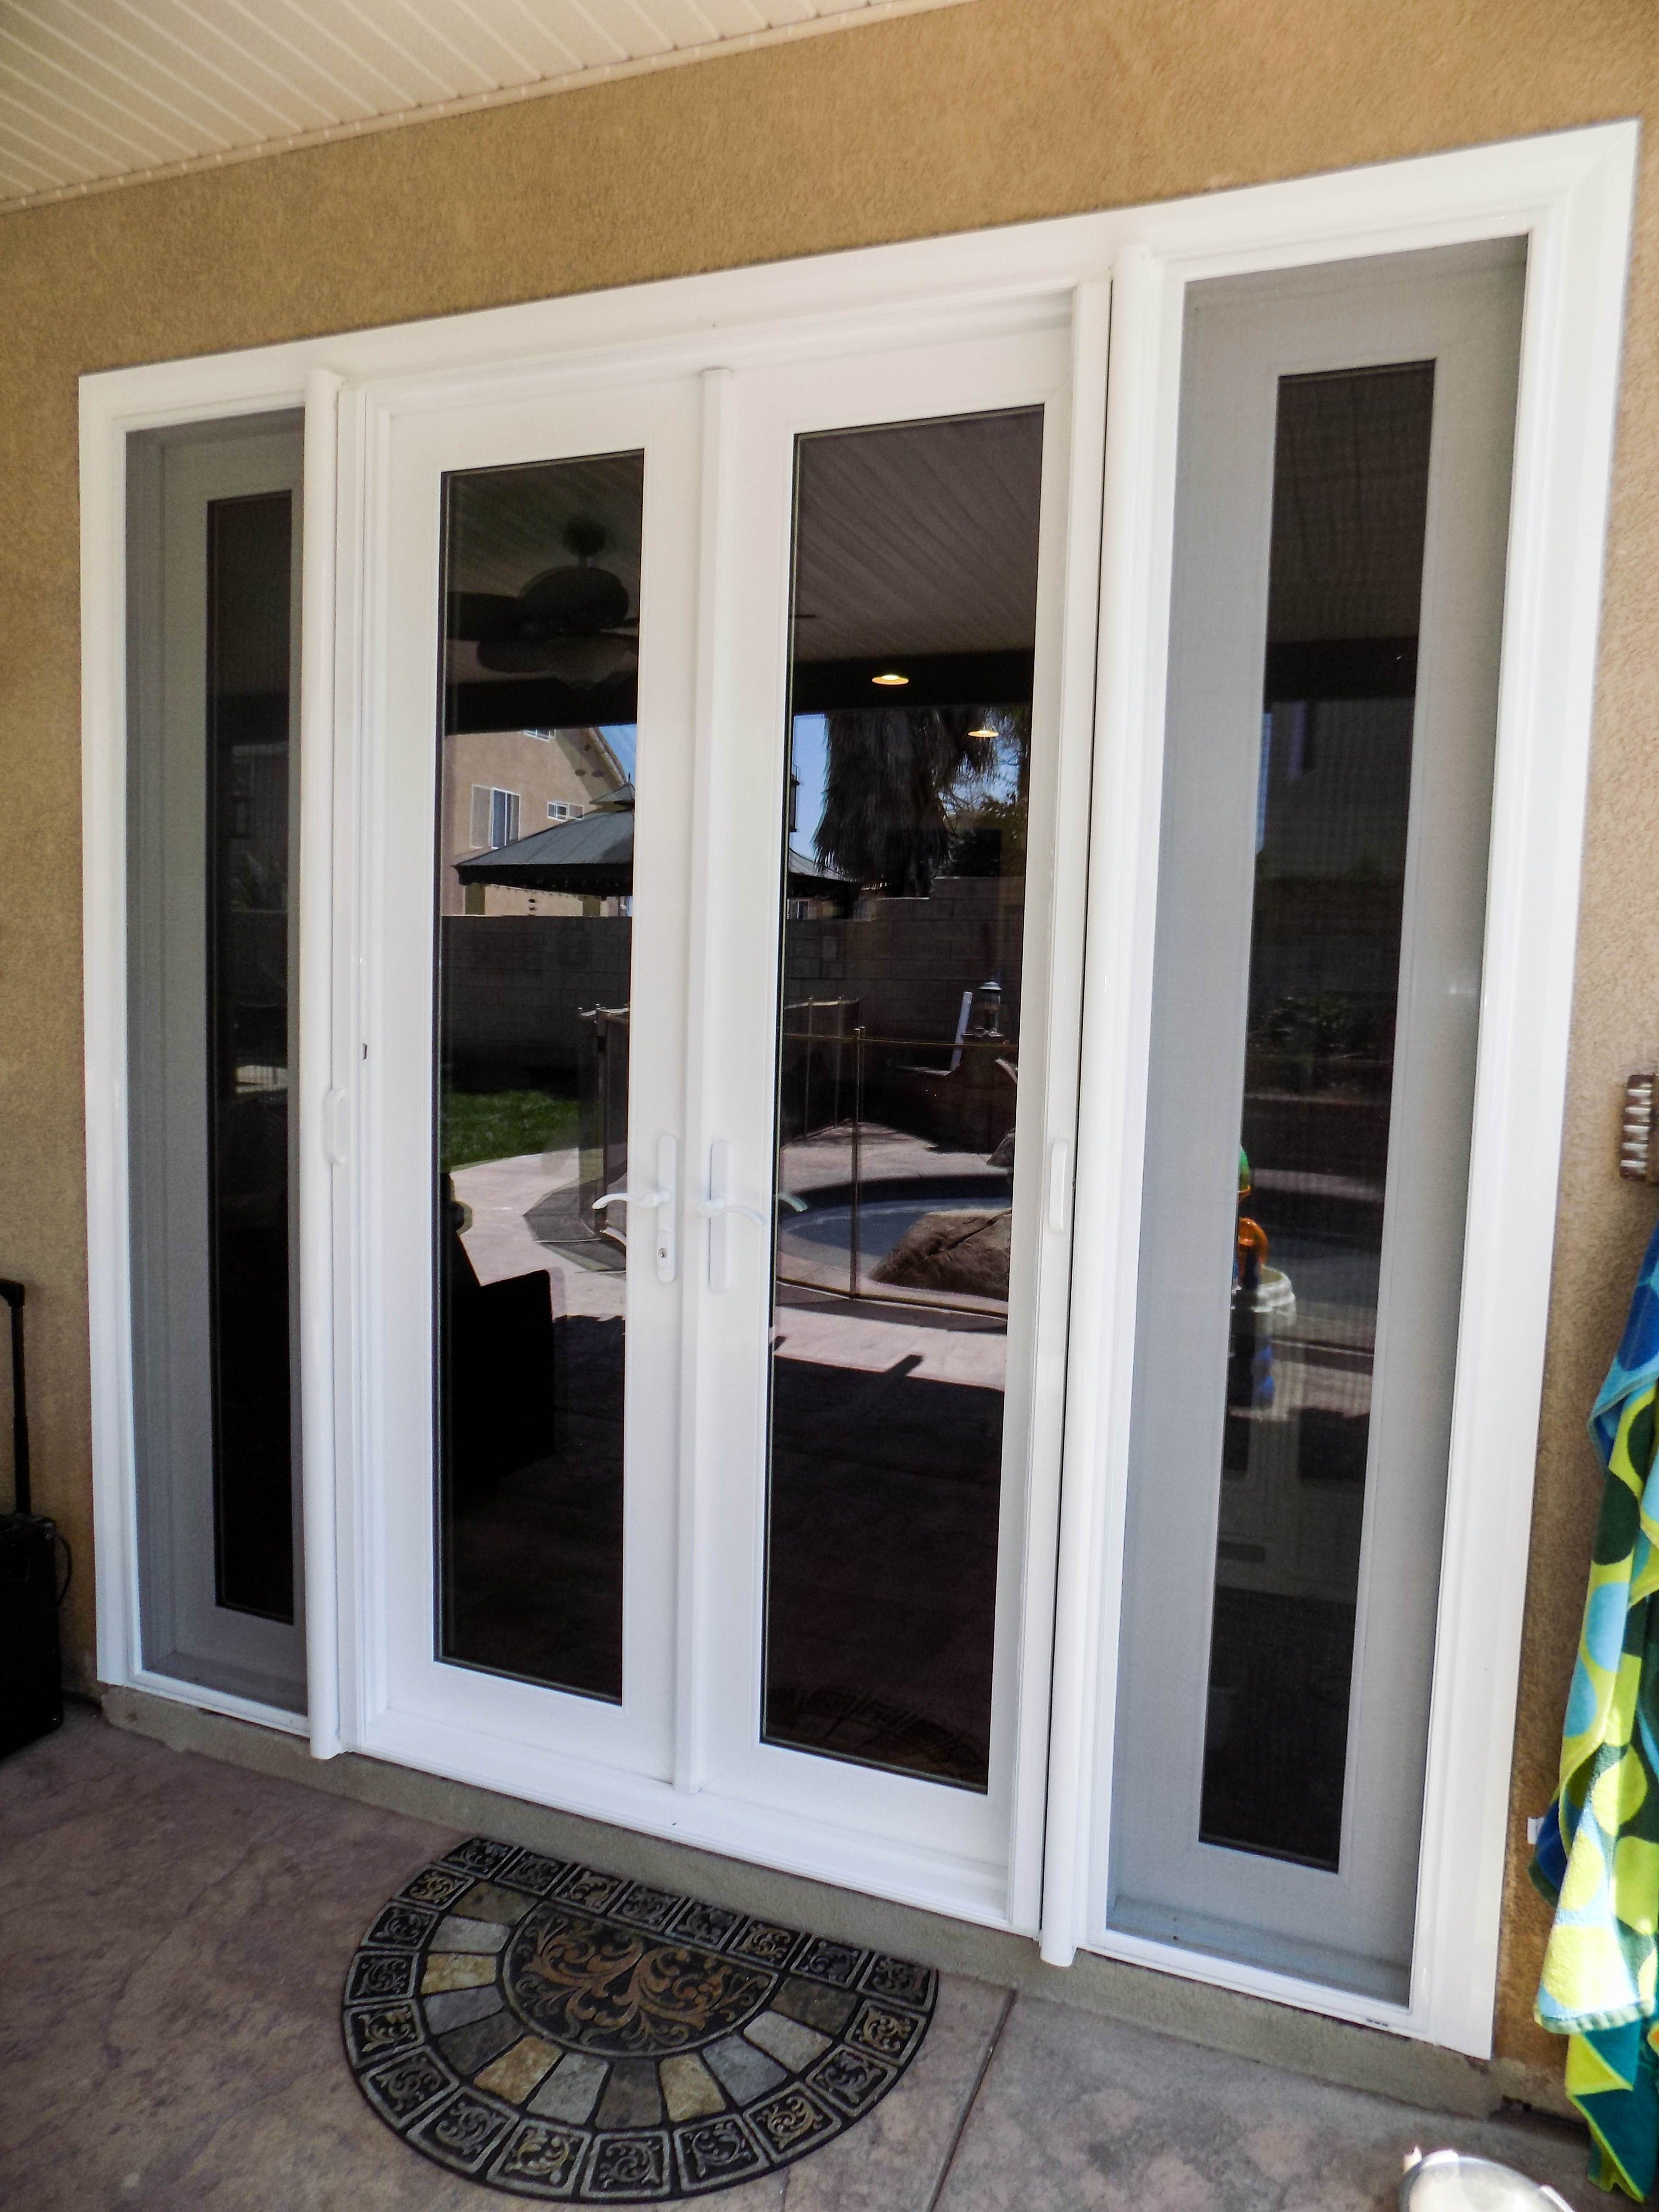 If You Have French Doors Don T Let Mosquitoes And Bugs Keep You From Leaving Them Open To Vent Instea Retractable Screen Door Retractable Screen French Doors